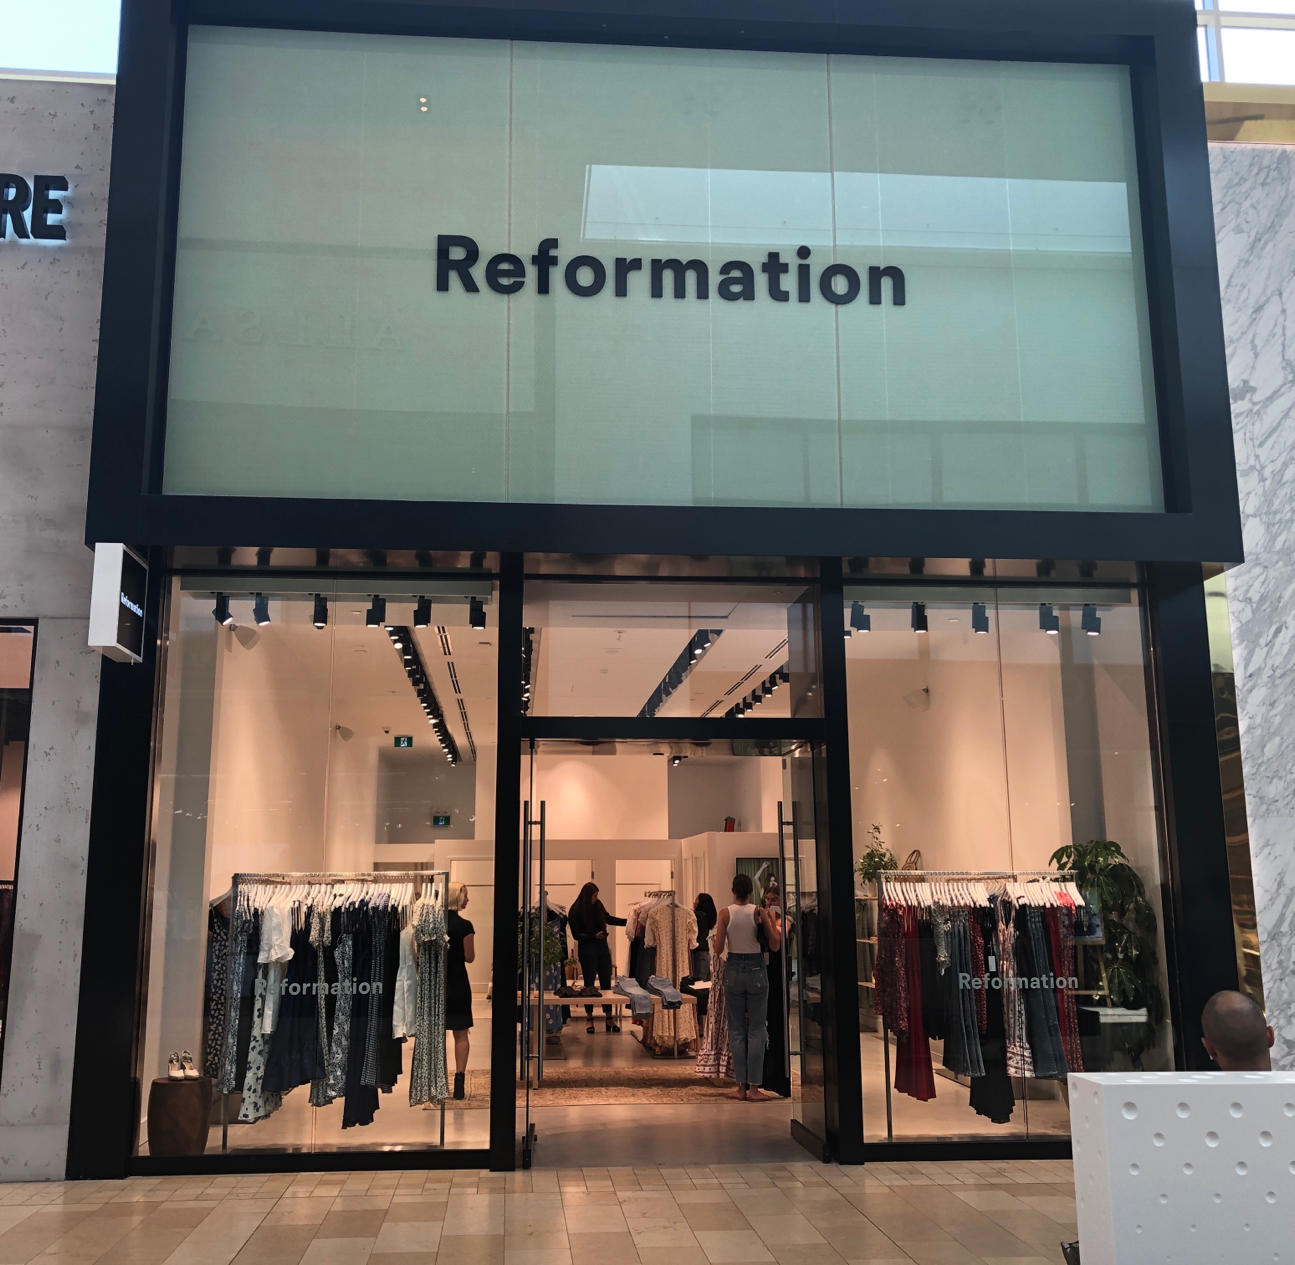 Reformation's Yorkdale storefront (source says signage will be changed). Photo: Jeff Berkowitz via LinkedIn.